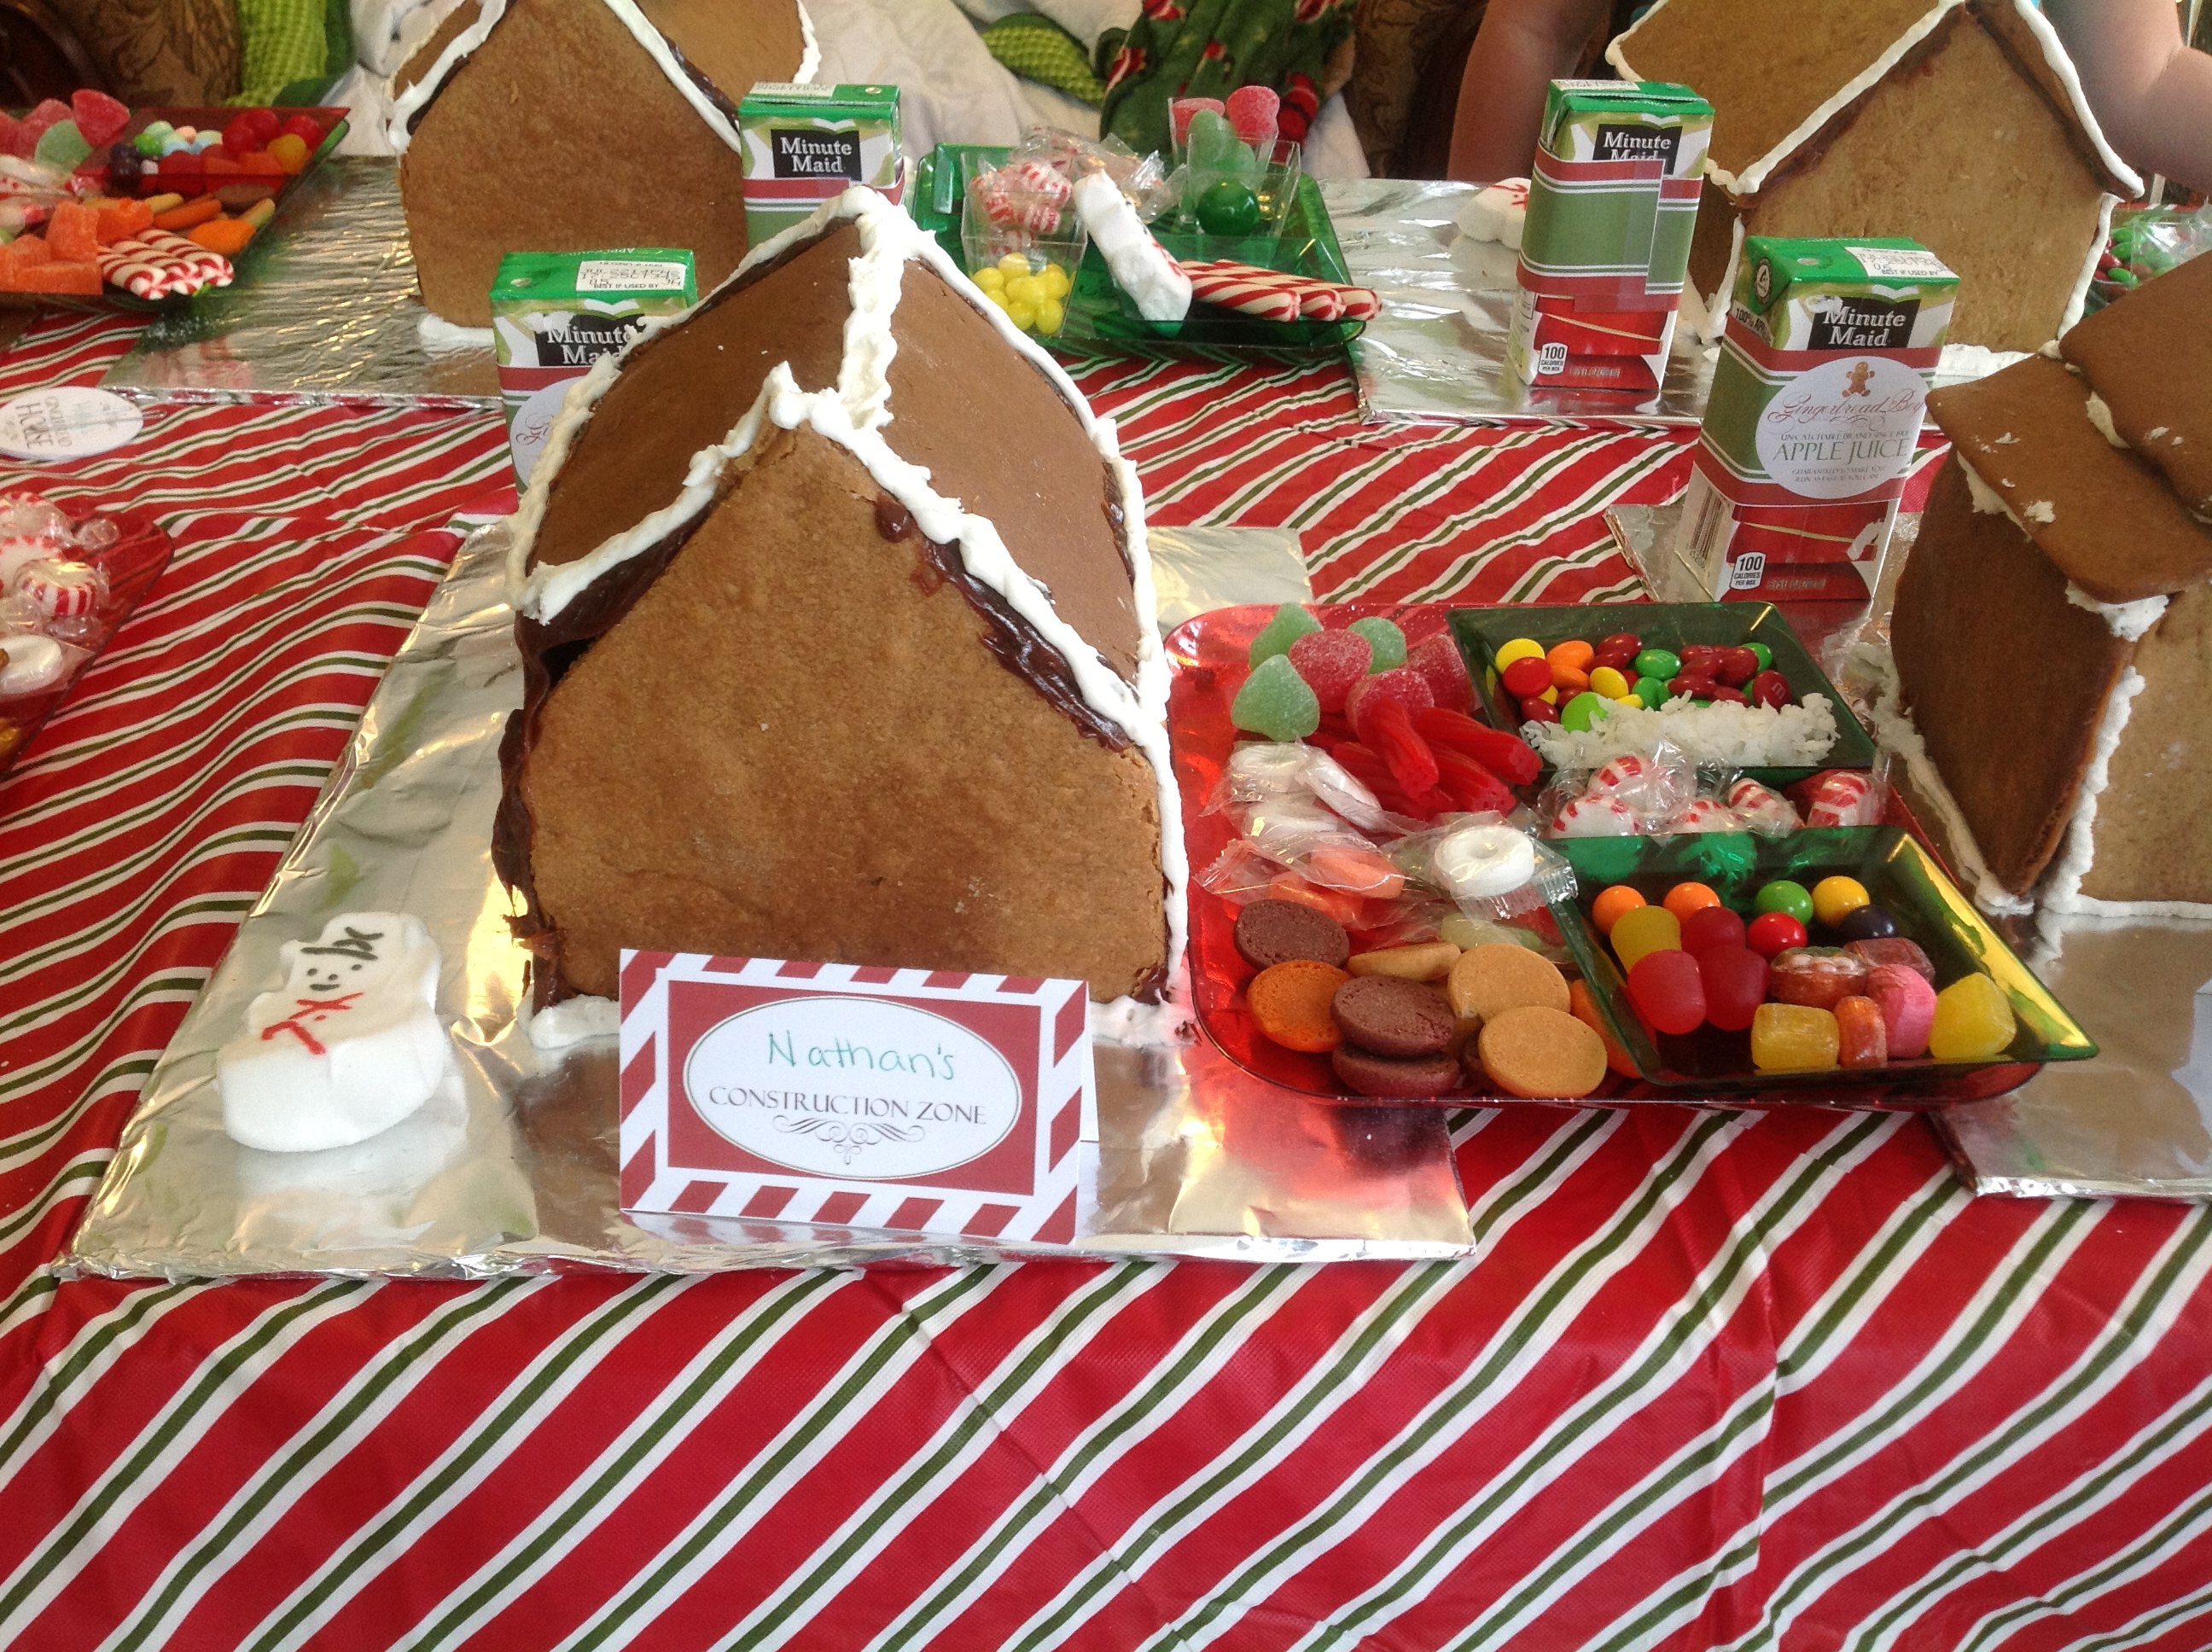 photo of gingerbread house, name tag and candy dish